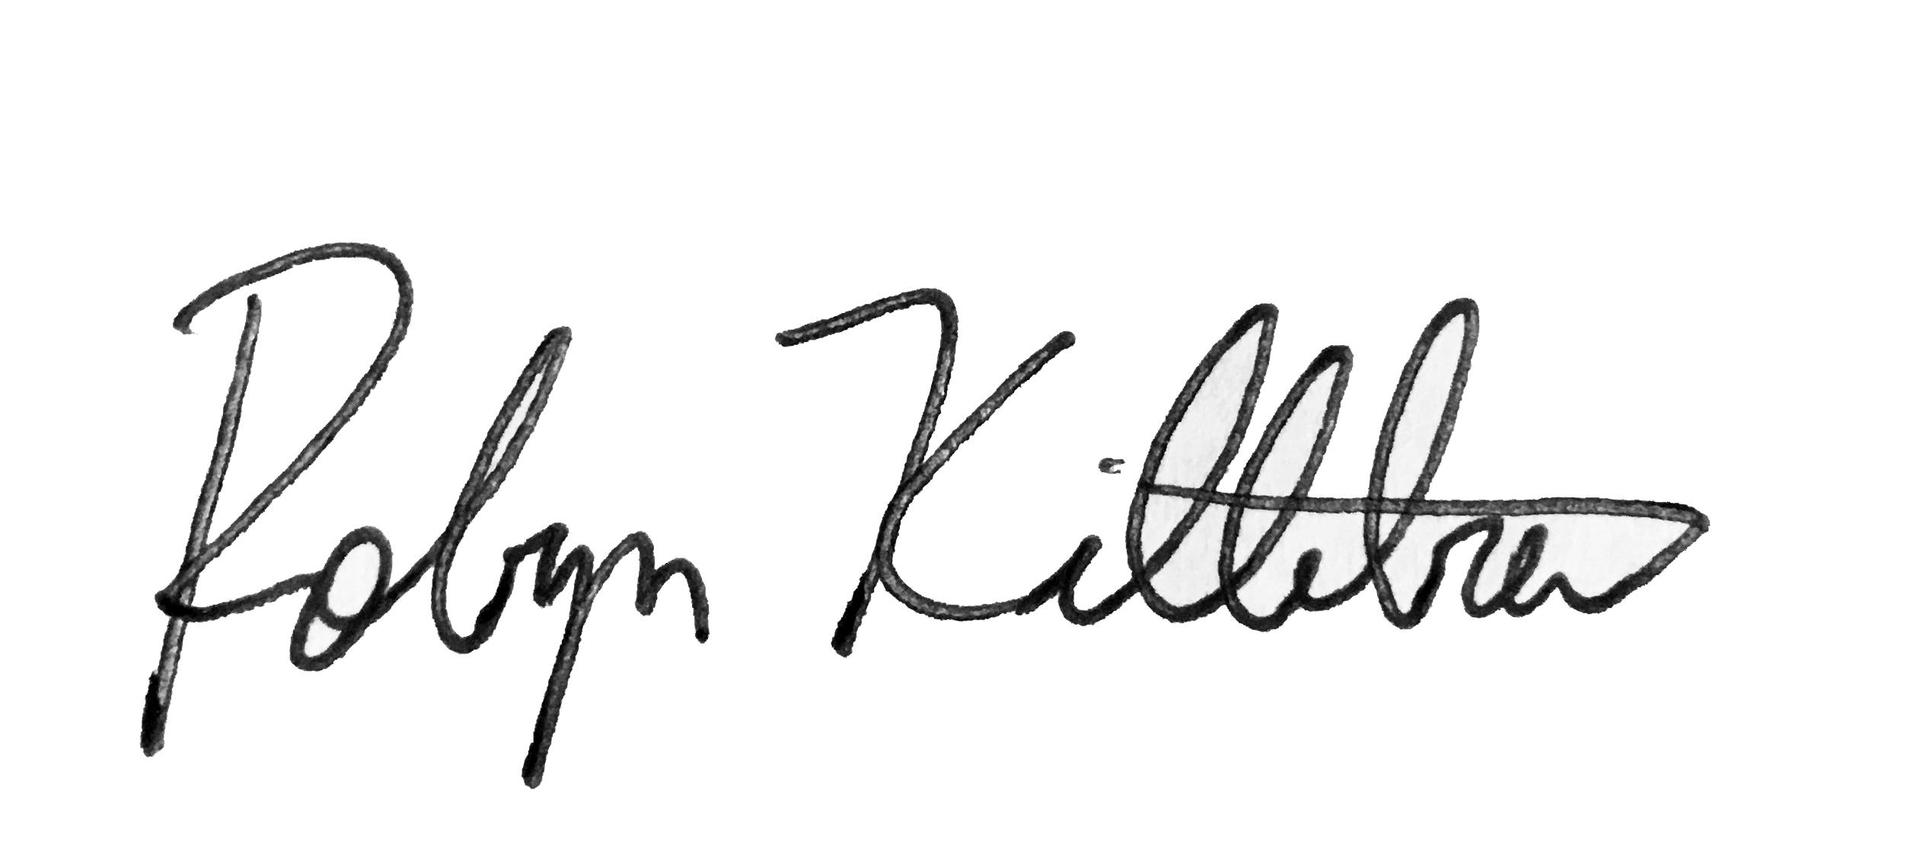 Dr. Killebrew's signature